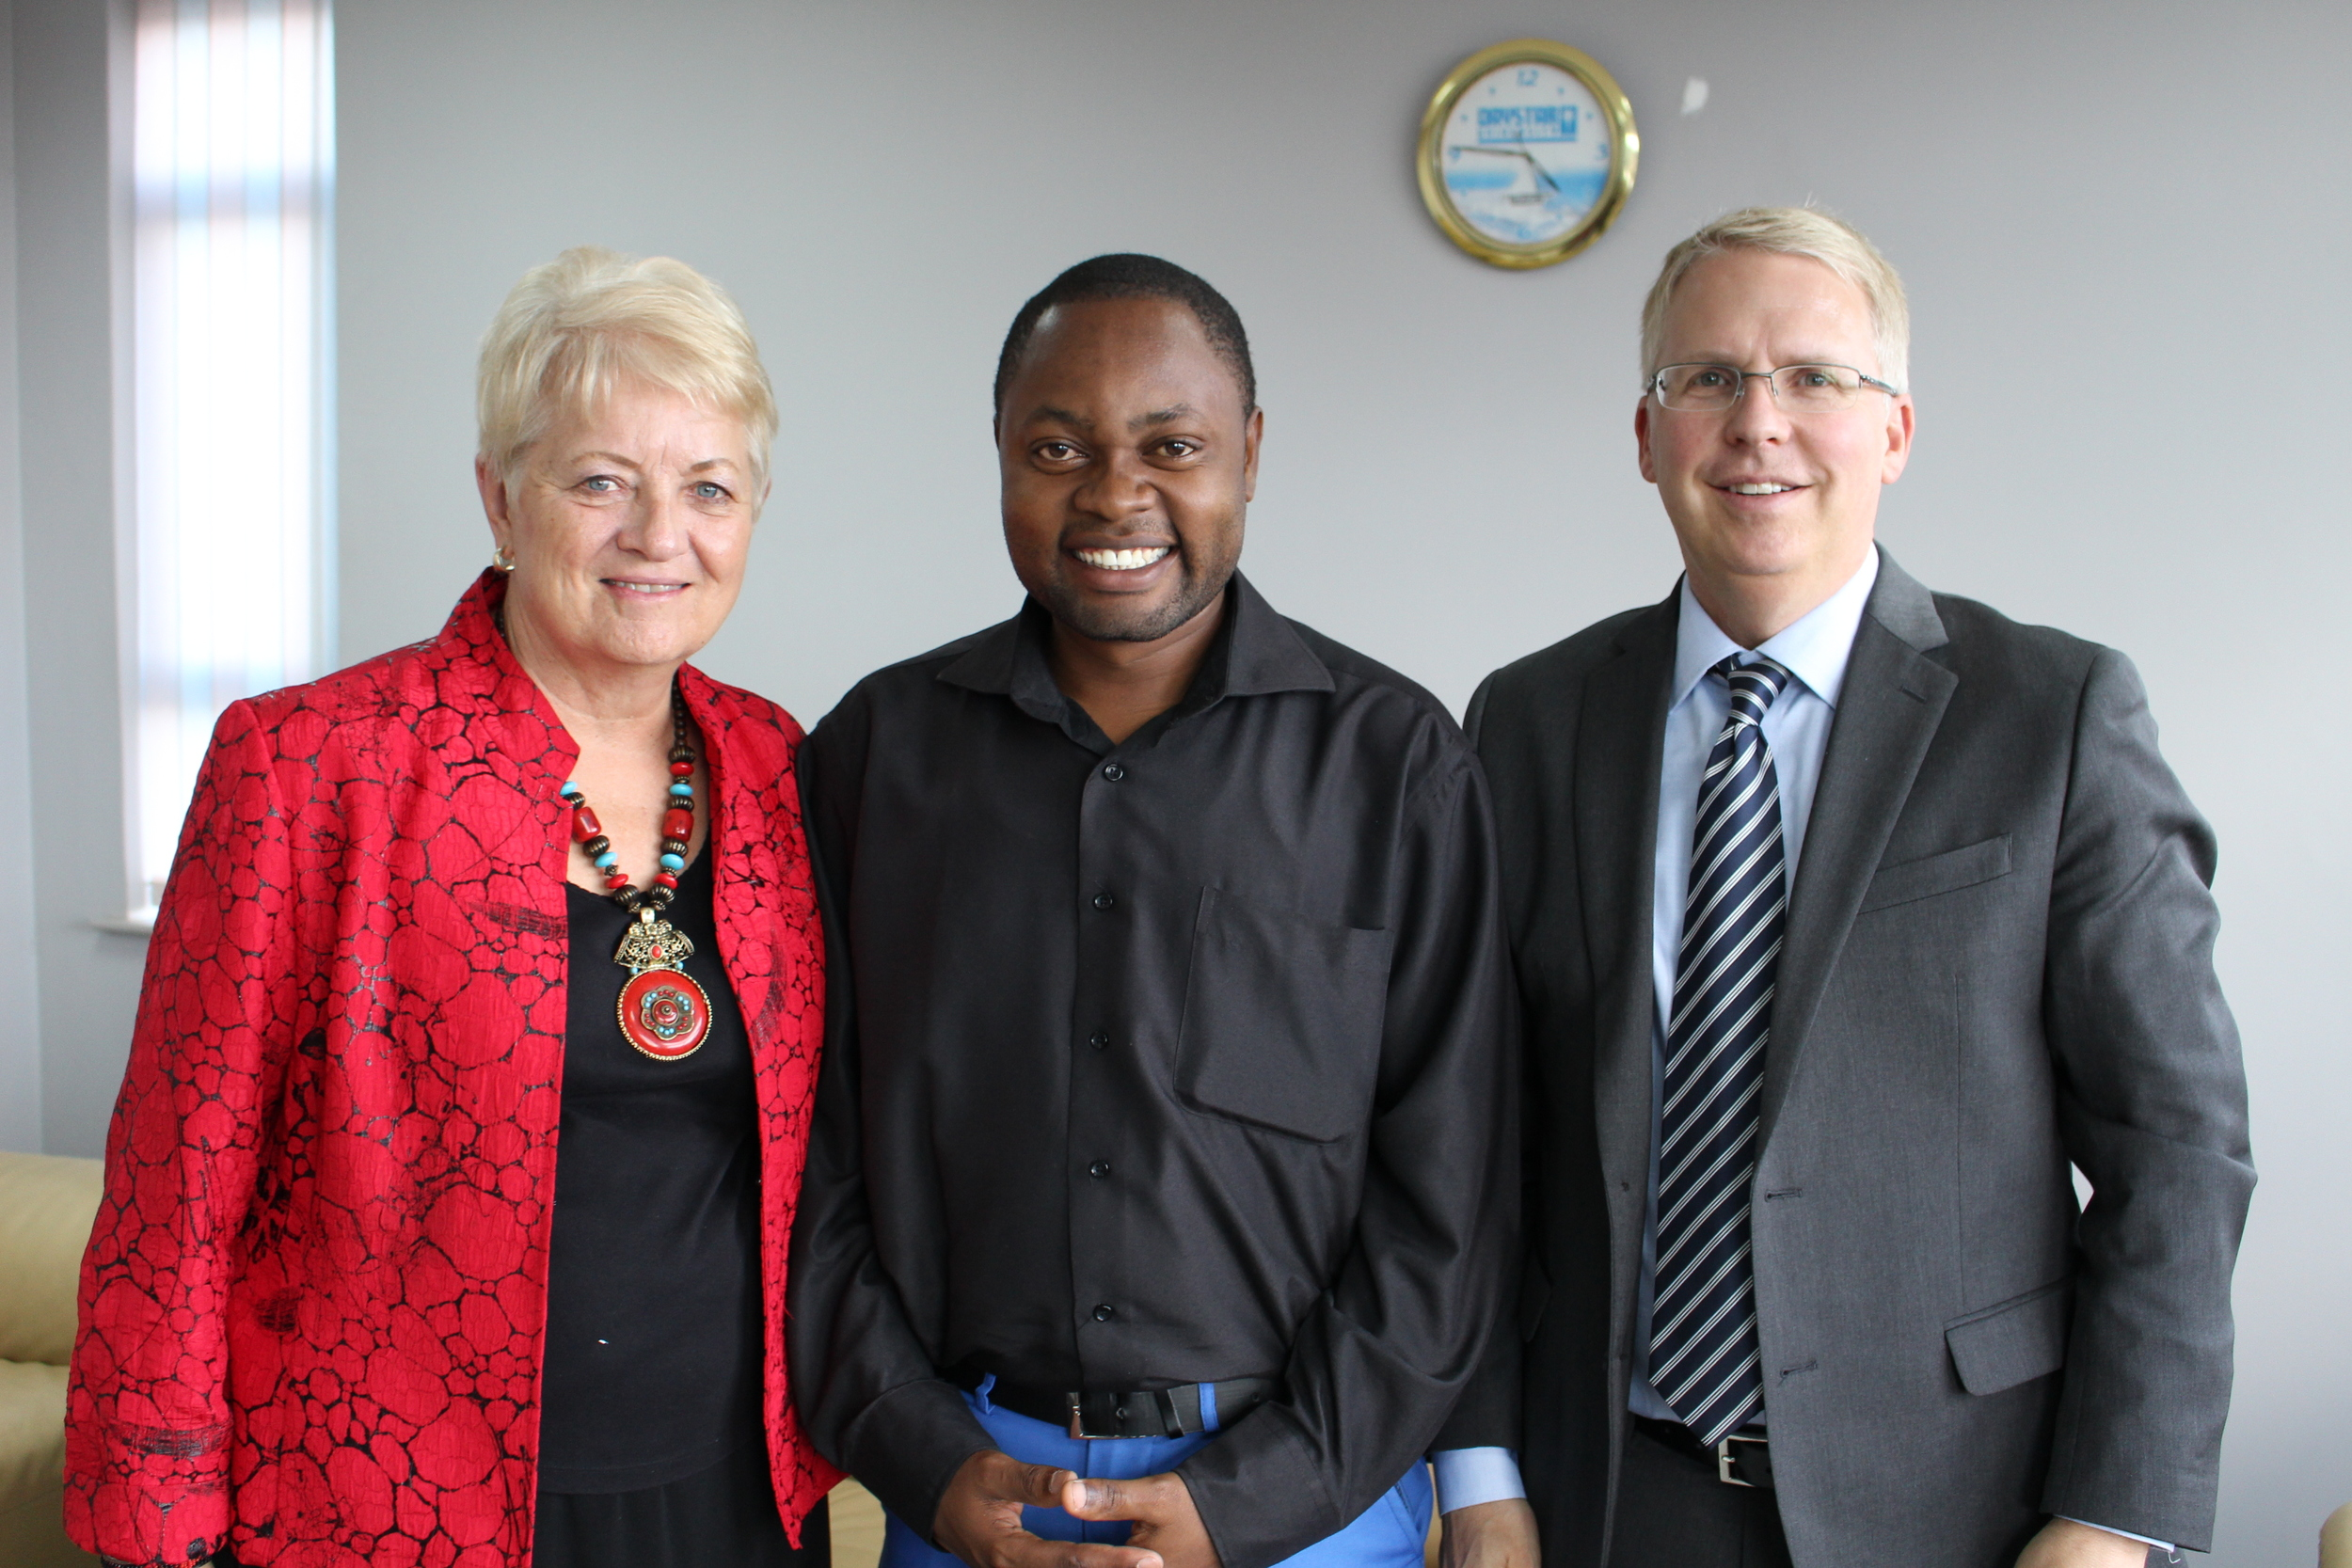 Daystar U.S. Executive Director, Kathleen Johnson, and Jon Halverson, Daystar U.S. Vice Board Chair, with Victor, a student supported by Daystar U.S.